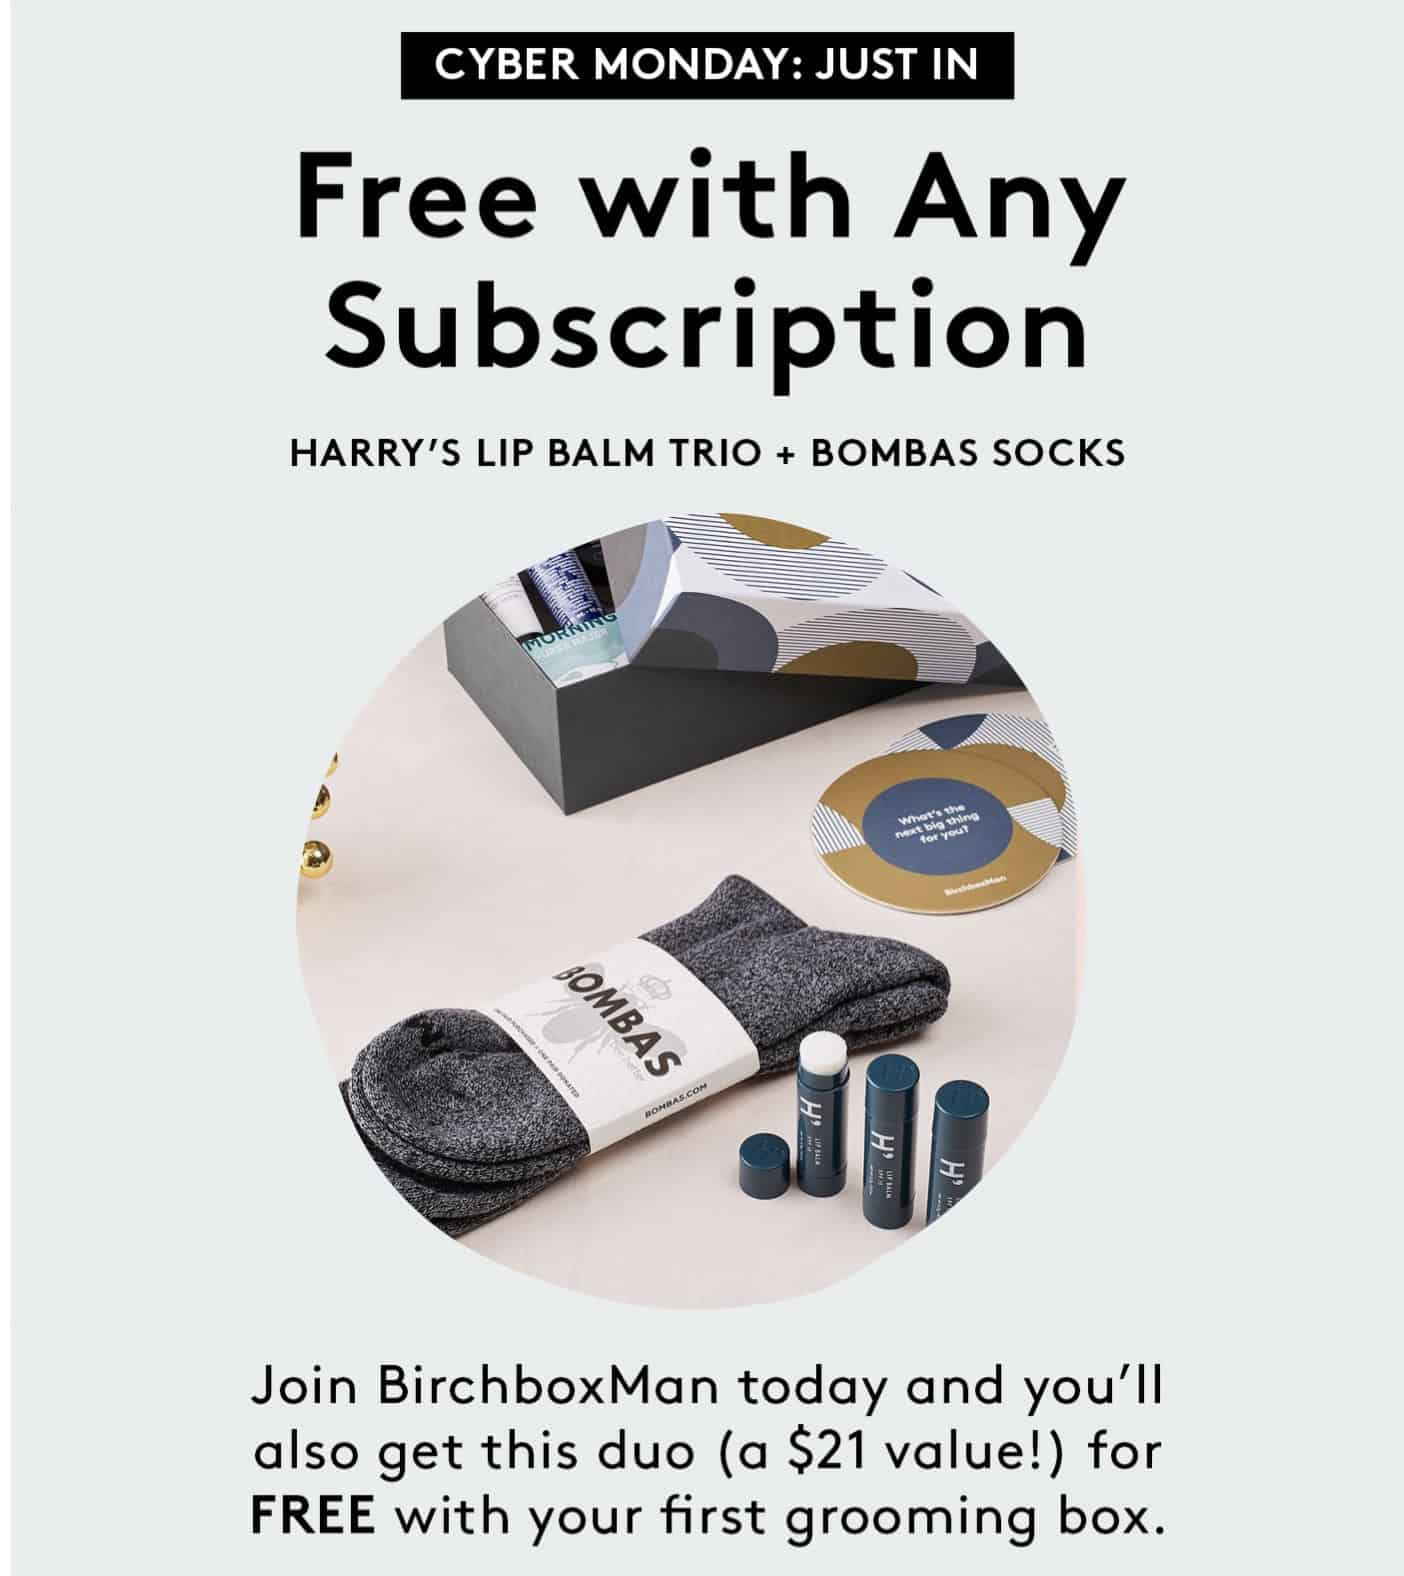 Birchbox Man Coupon: Free Bombas Socks & Lip Balm Trio With Subscription!